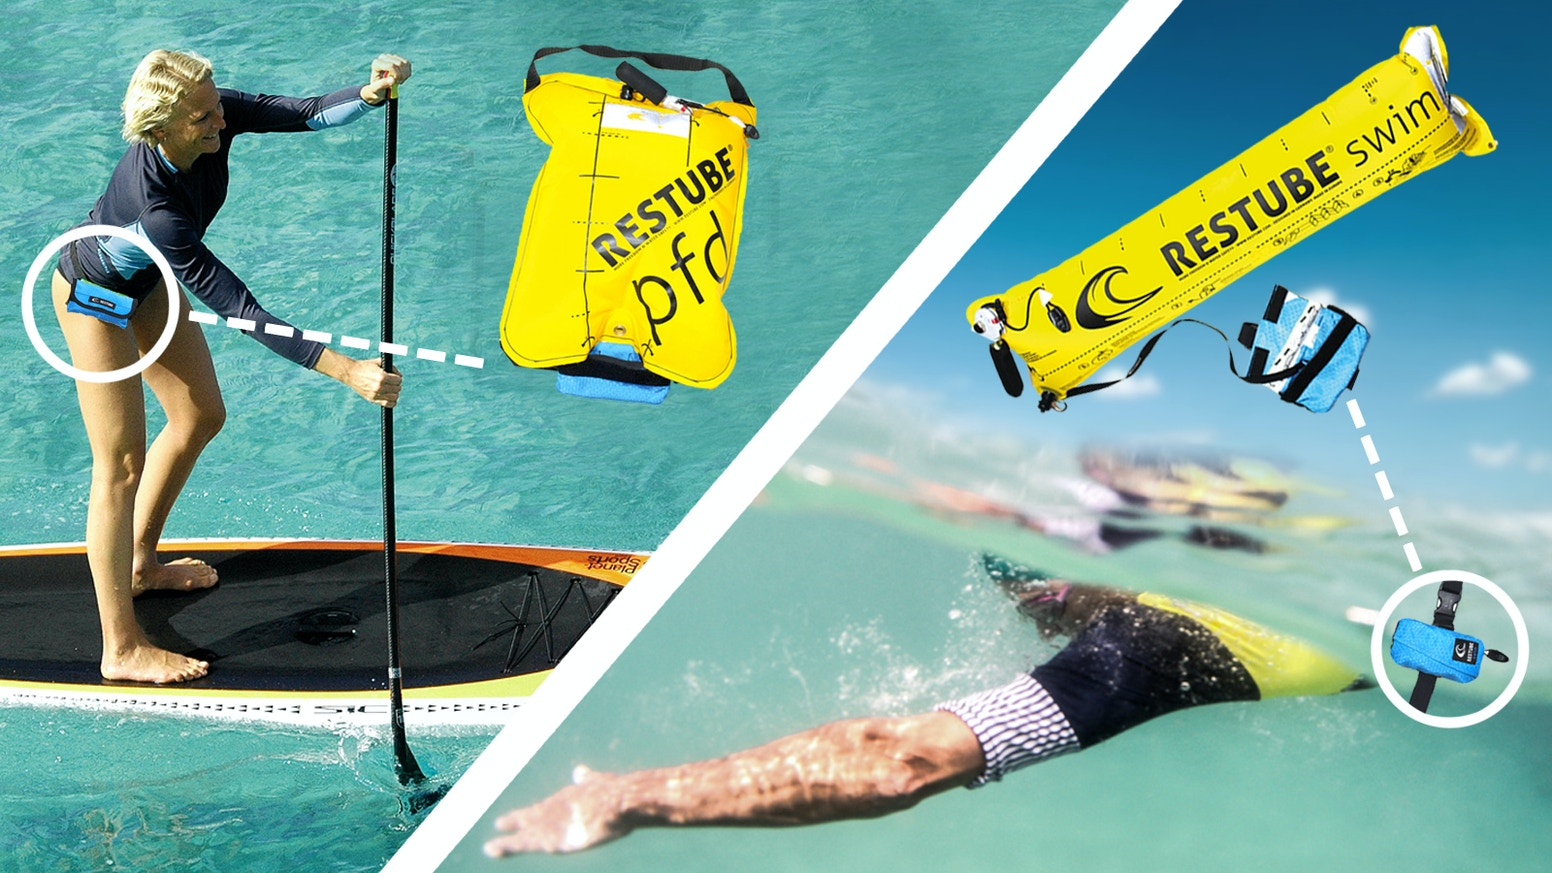 Ultralite Inflatable Life Jacket and Swim Tube by Restube